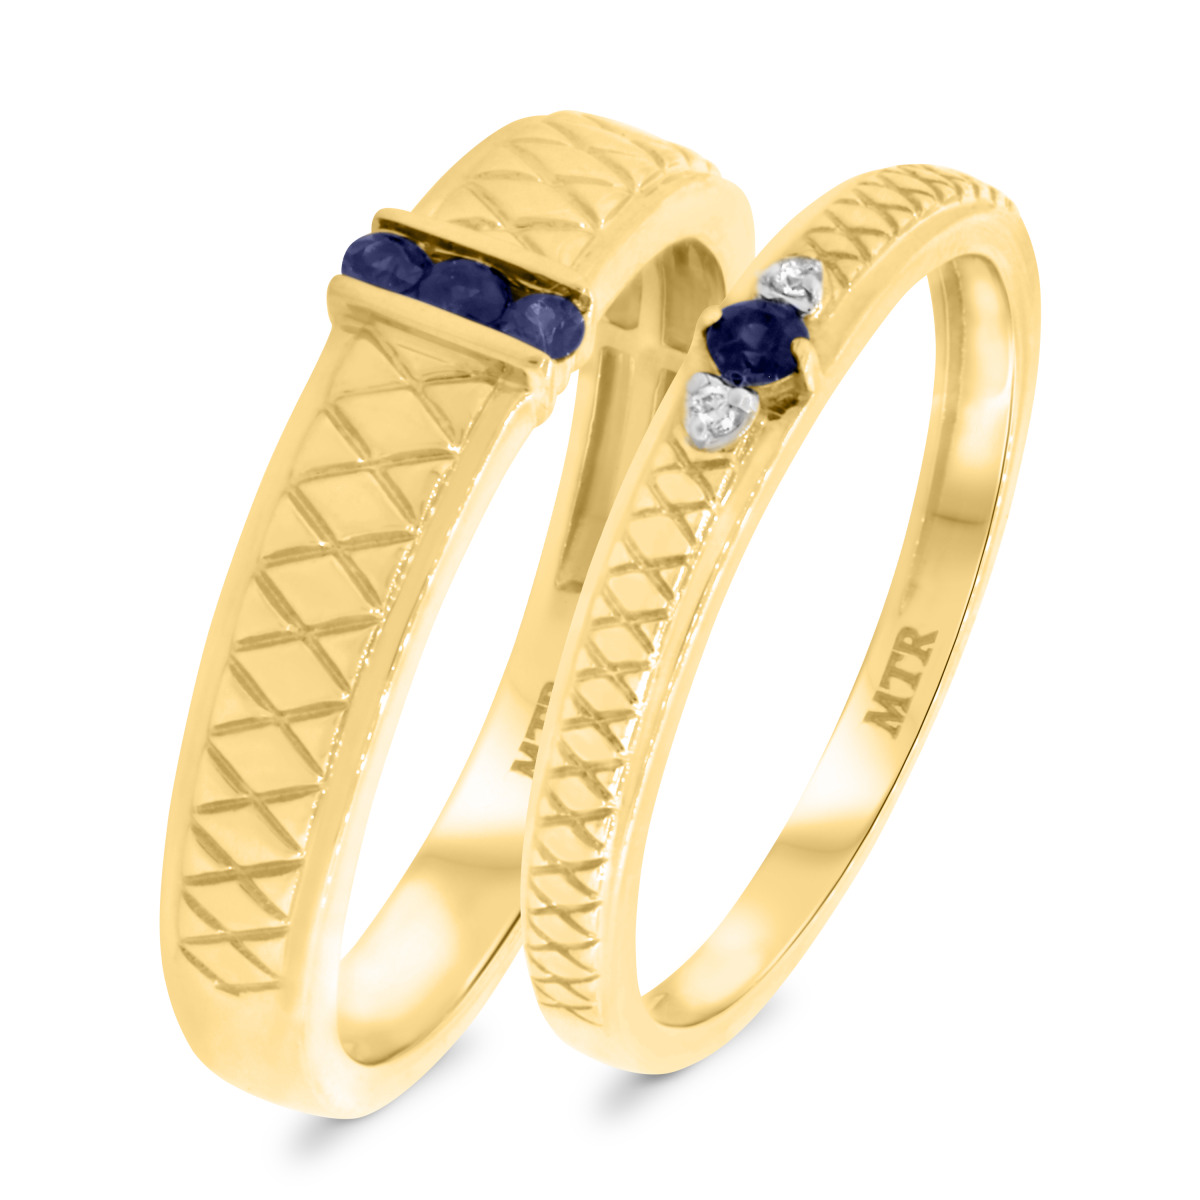 1/7 Carat T.W. Sapphire Matching Wedding Band Set 10K Yellow Gold